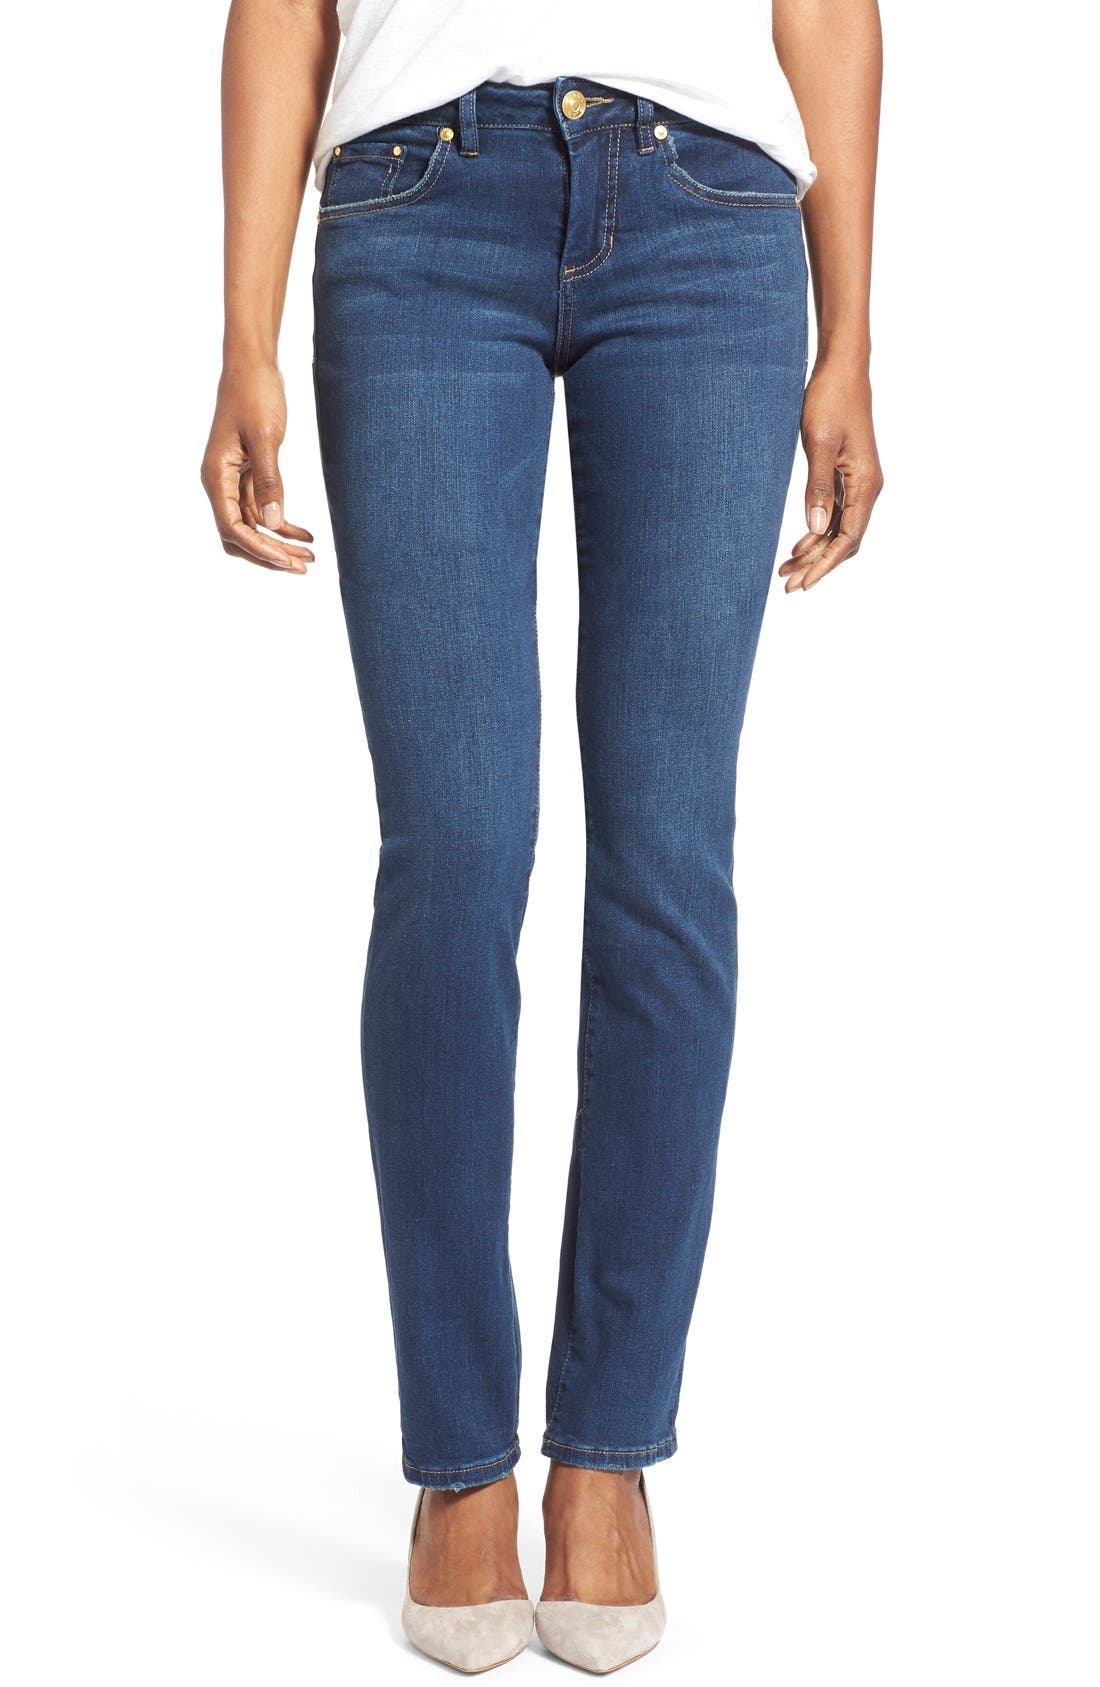 JAG JEANS 'Patton' Stretch Straight Leg Jeans